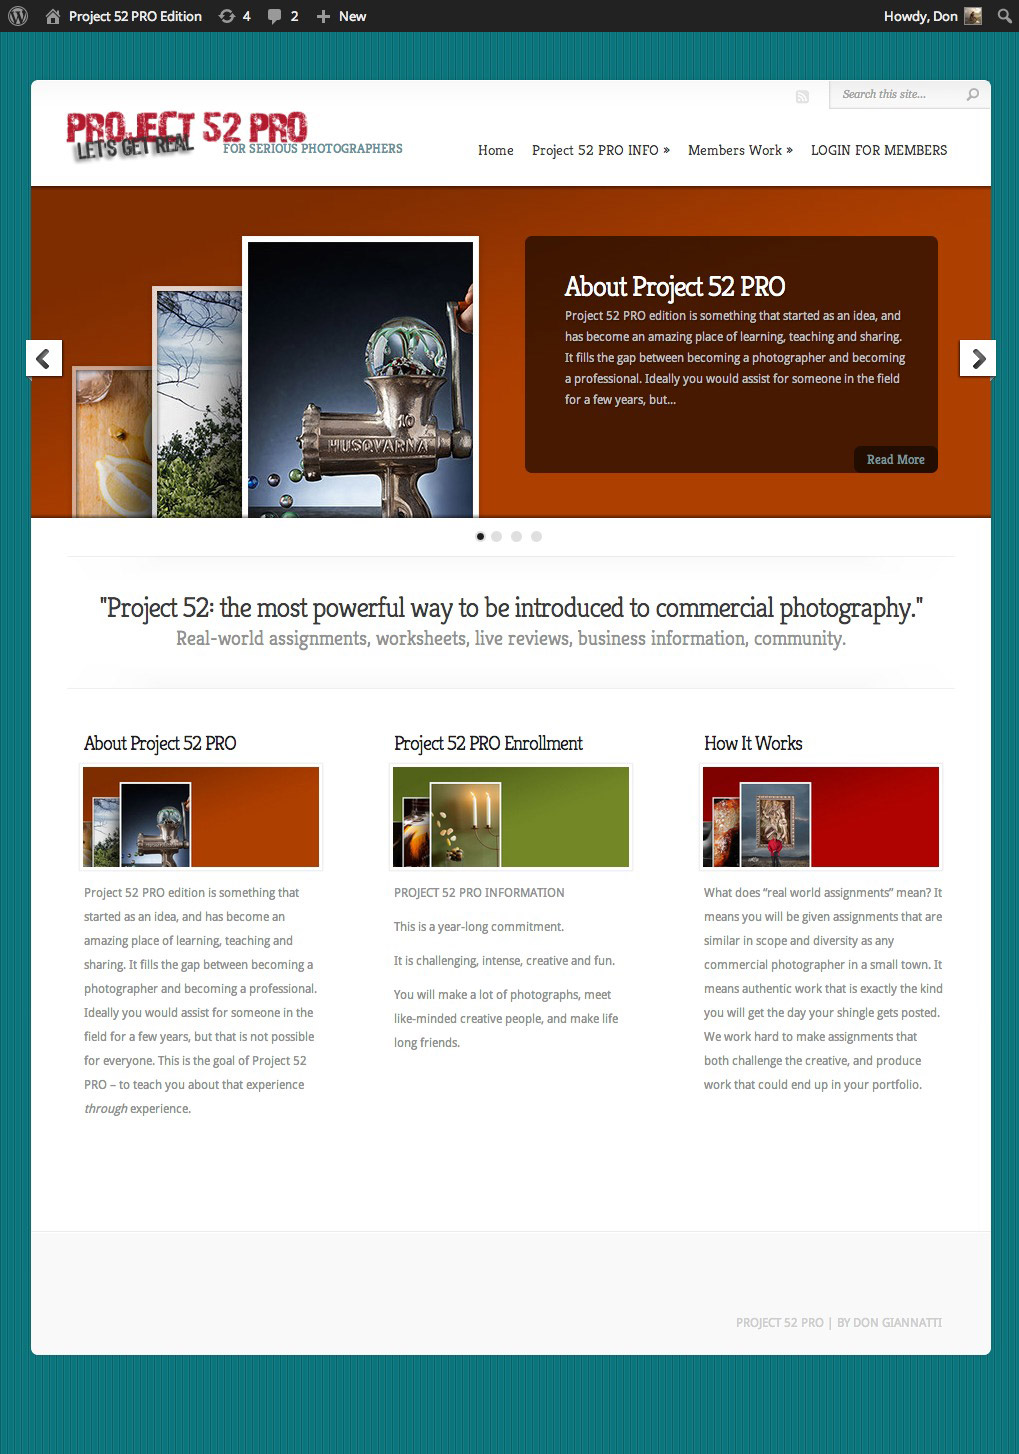 Project-52-PRO-Edition-main-page